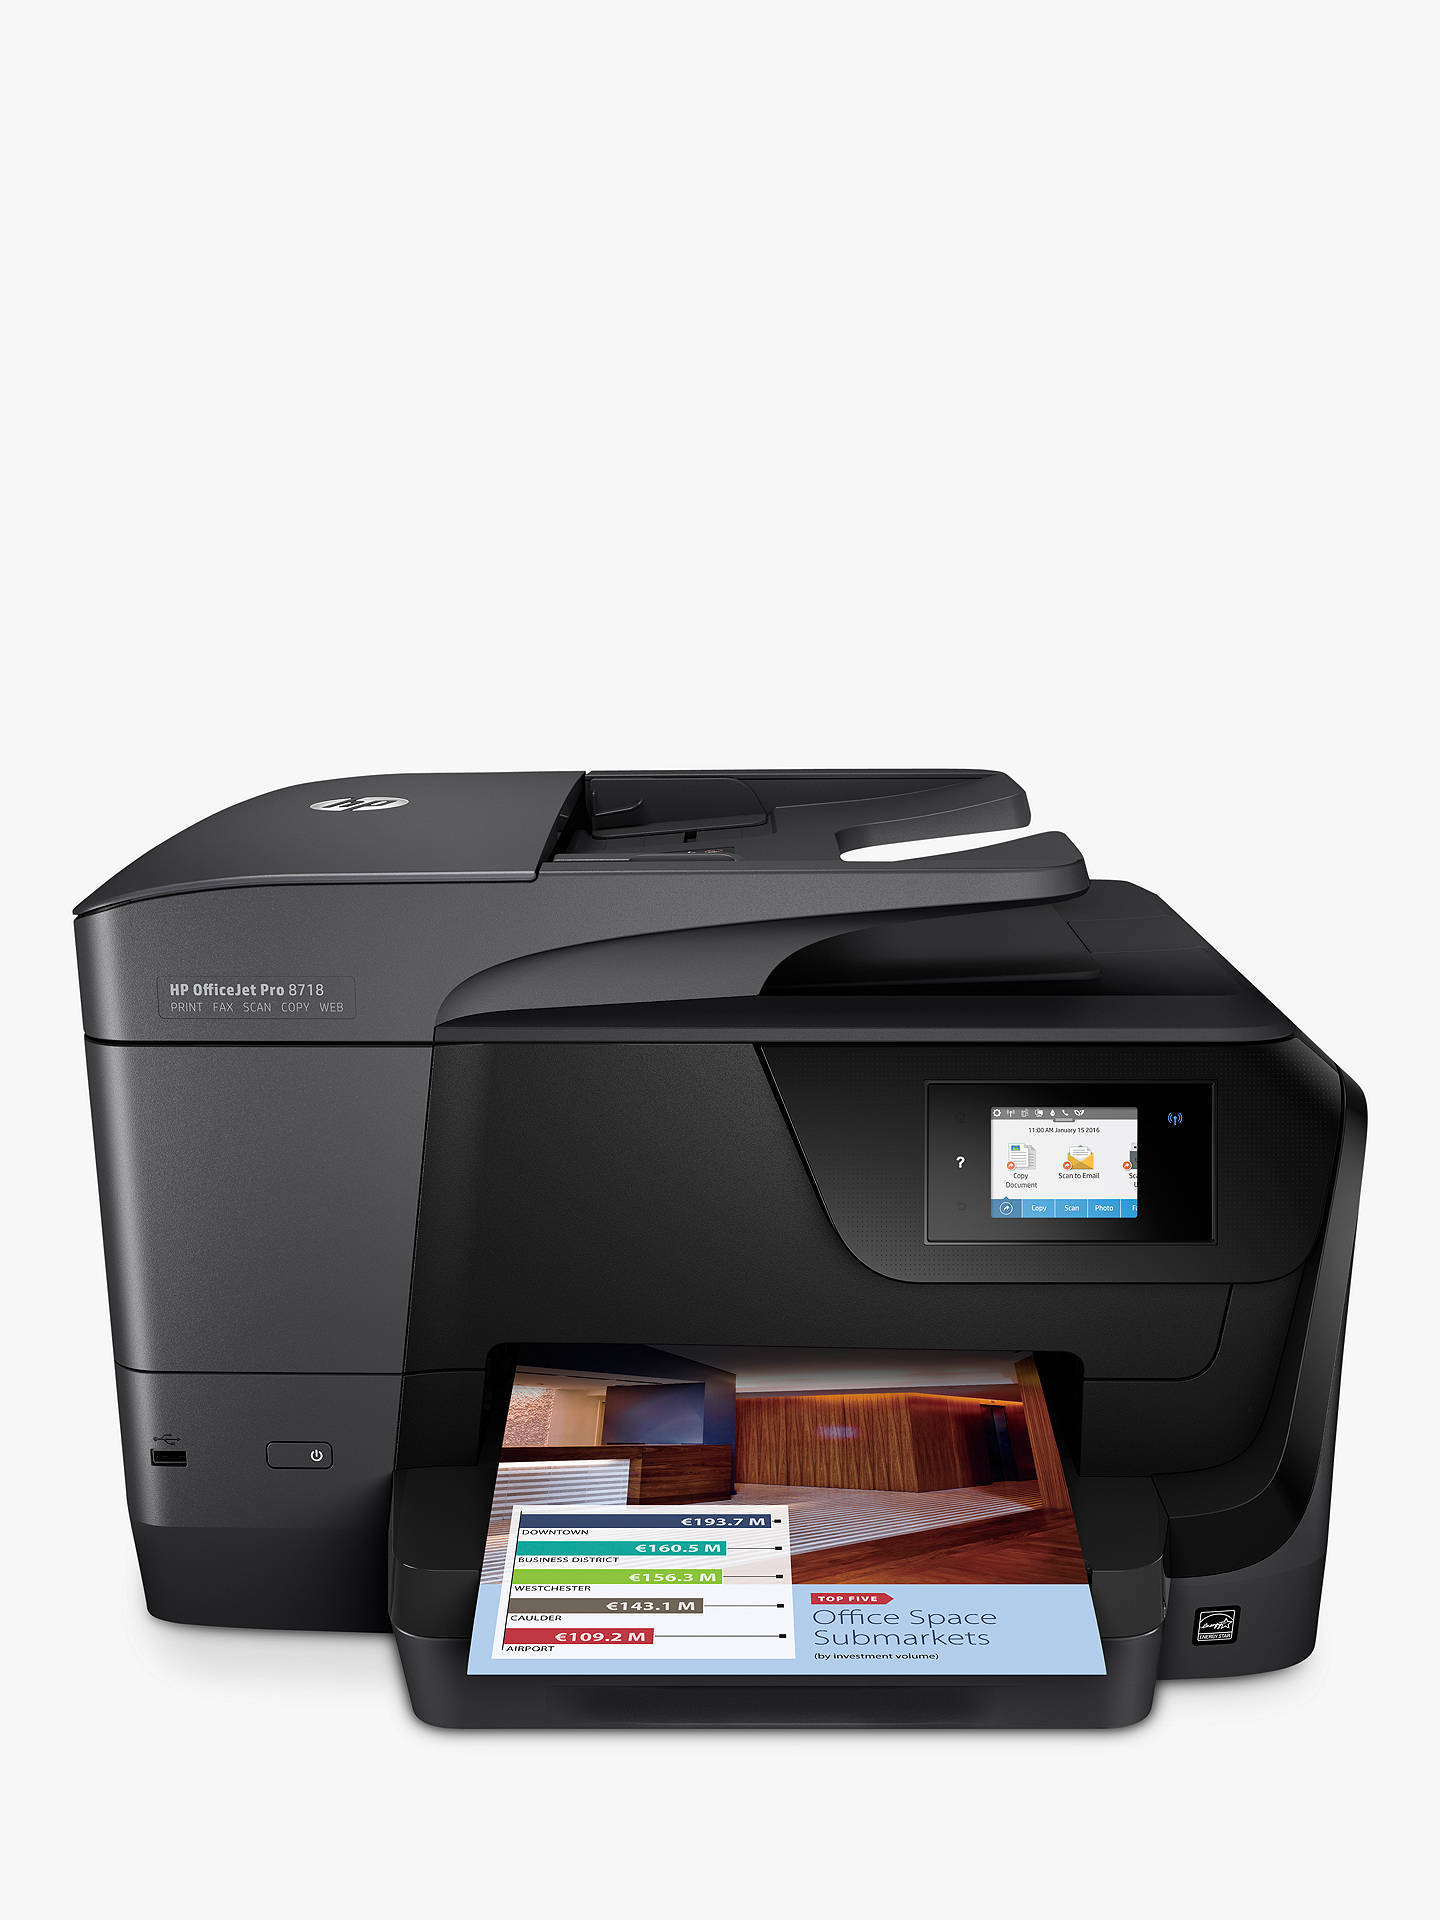 HP OfficeJet Pro 8718 All-in-One Wireless Printer & Fax Machine with Touch  Screen, HP Instant Ink Compatible